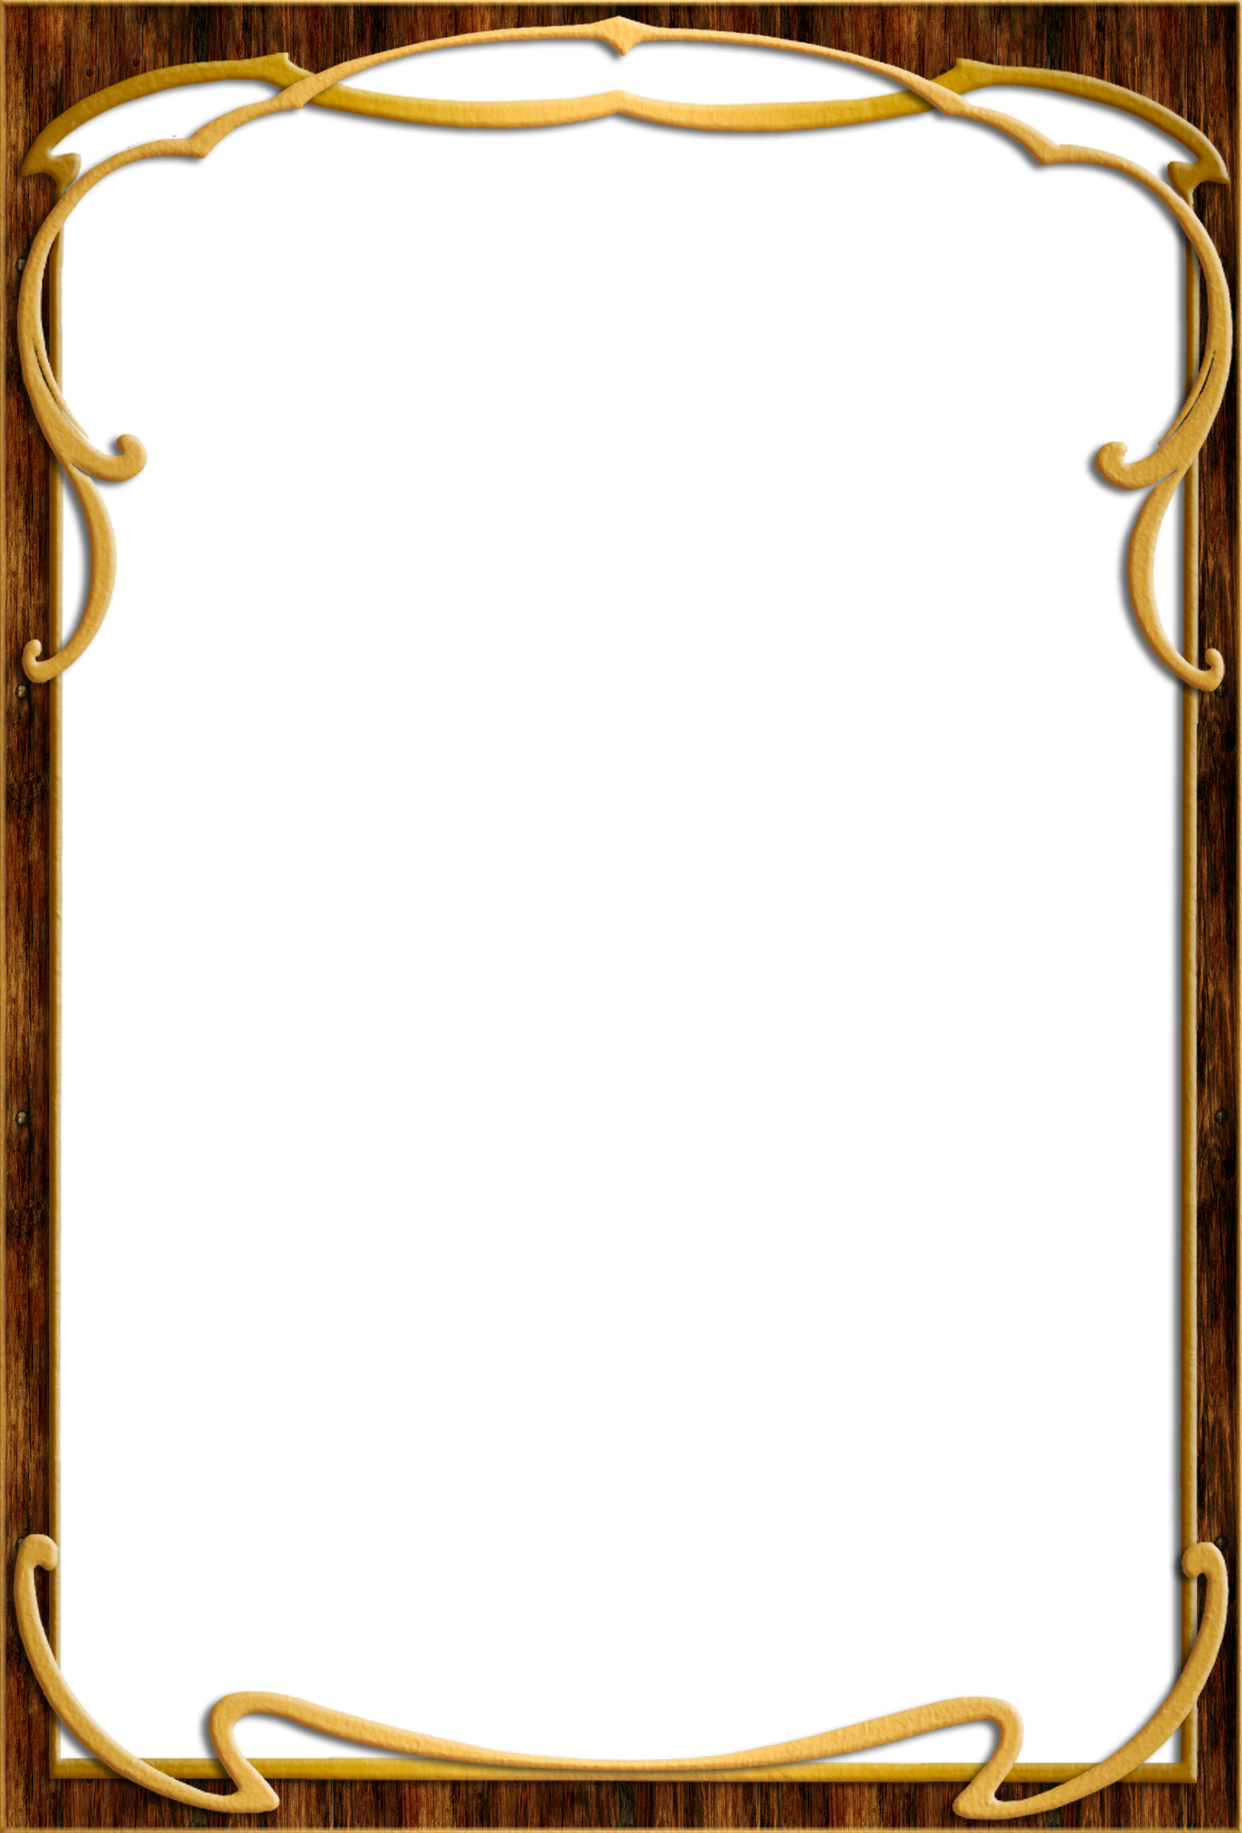 Photo frames png. Wood frame images free